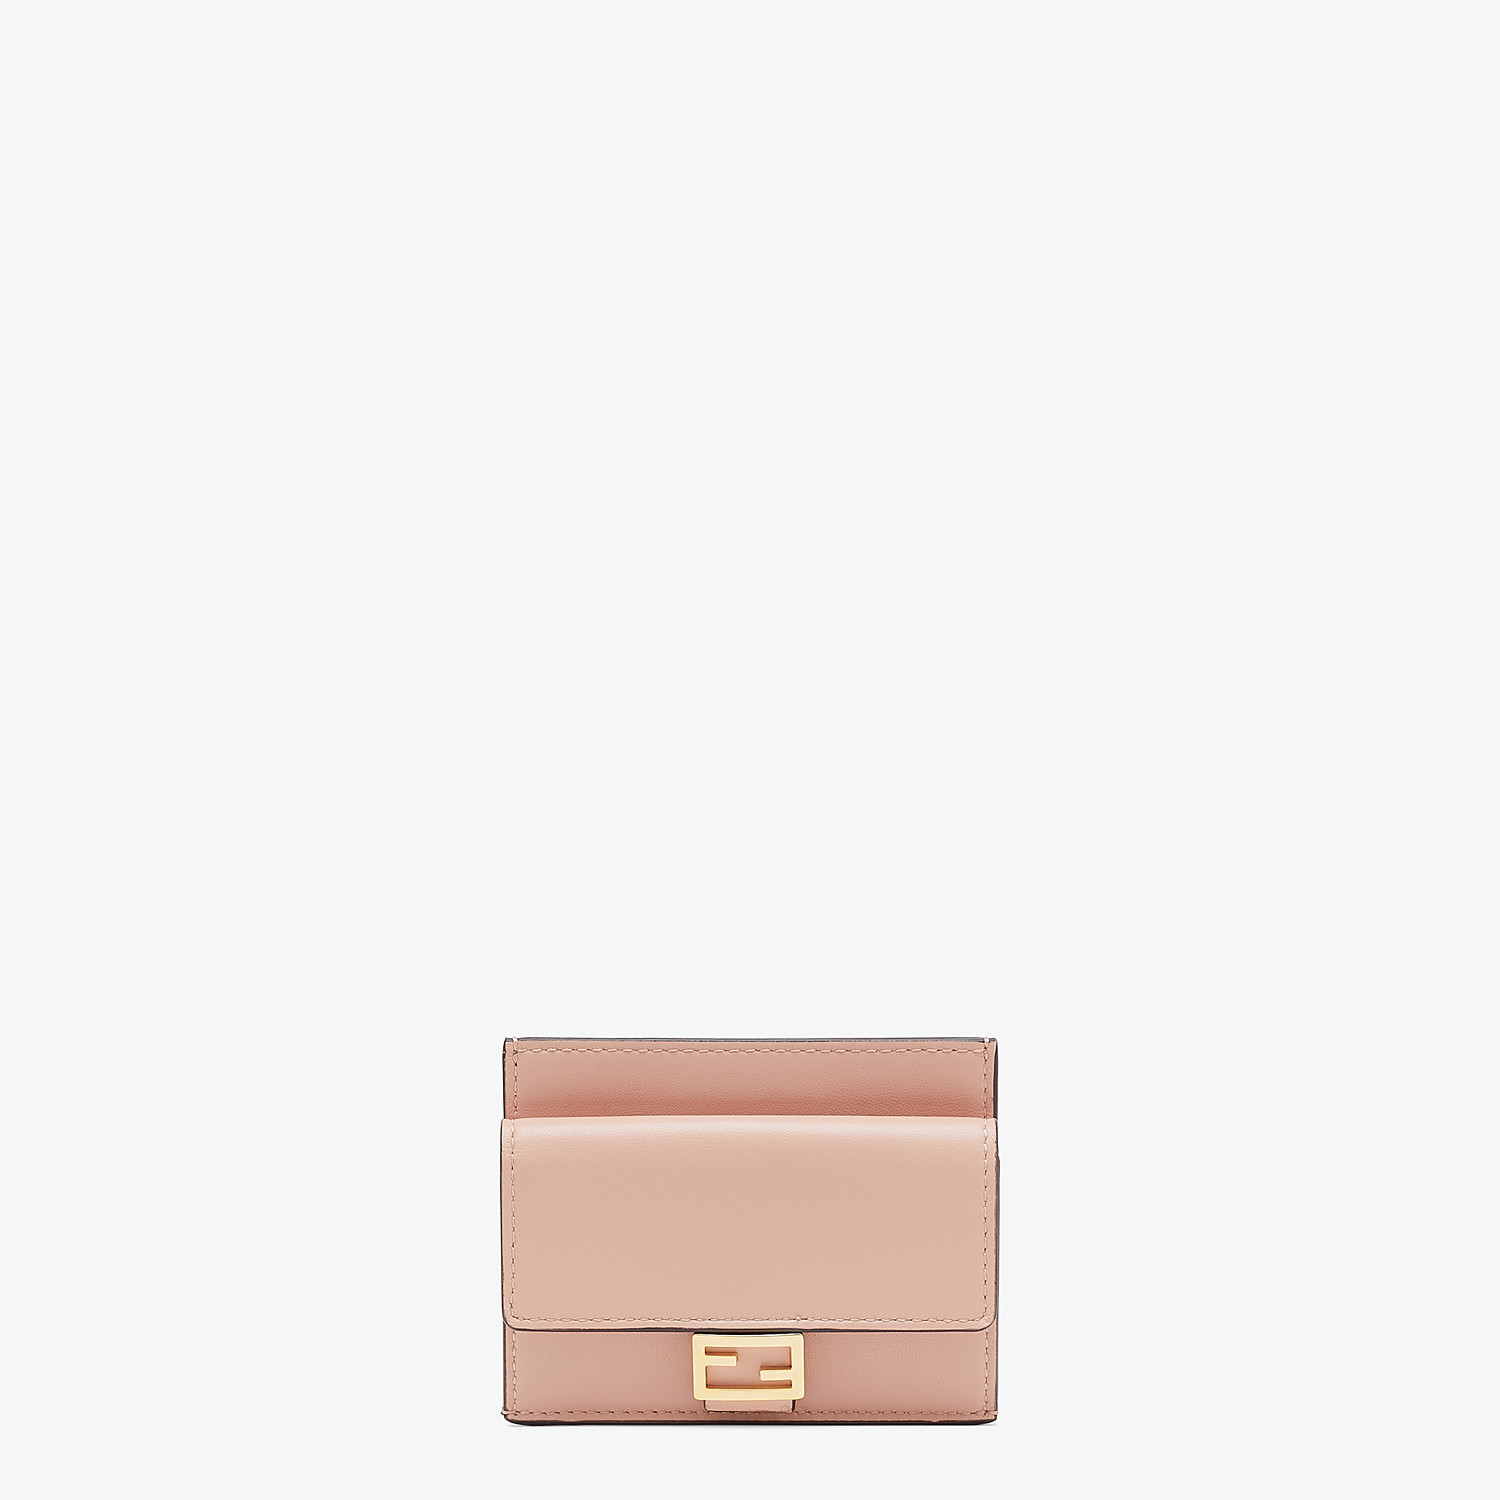 FENDI CARD HOLDER - Pink nappa leather card holder - view 1 detail